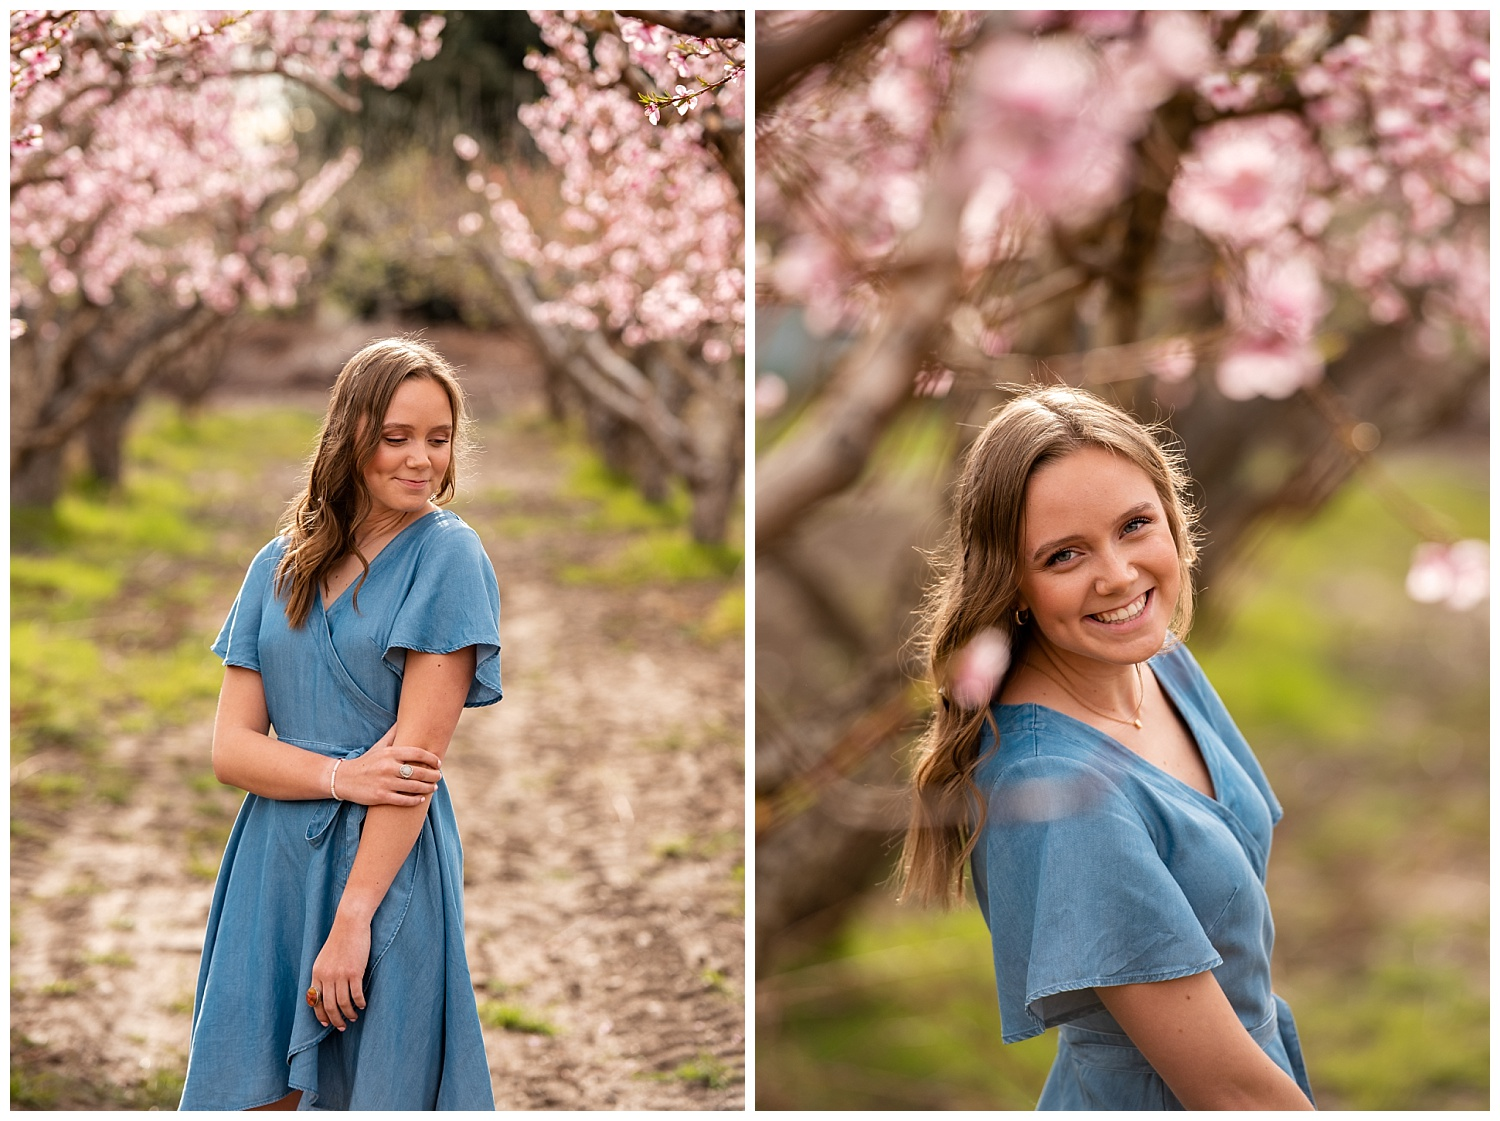 Utah Senior Photographer, Dan Page Photography, Tunnel Springs North Salt Lake Senior Portraits (2).jpg